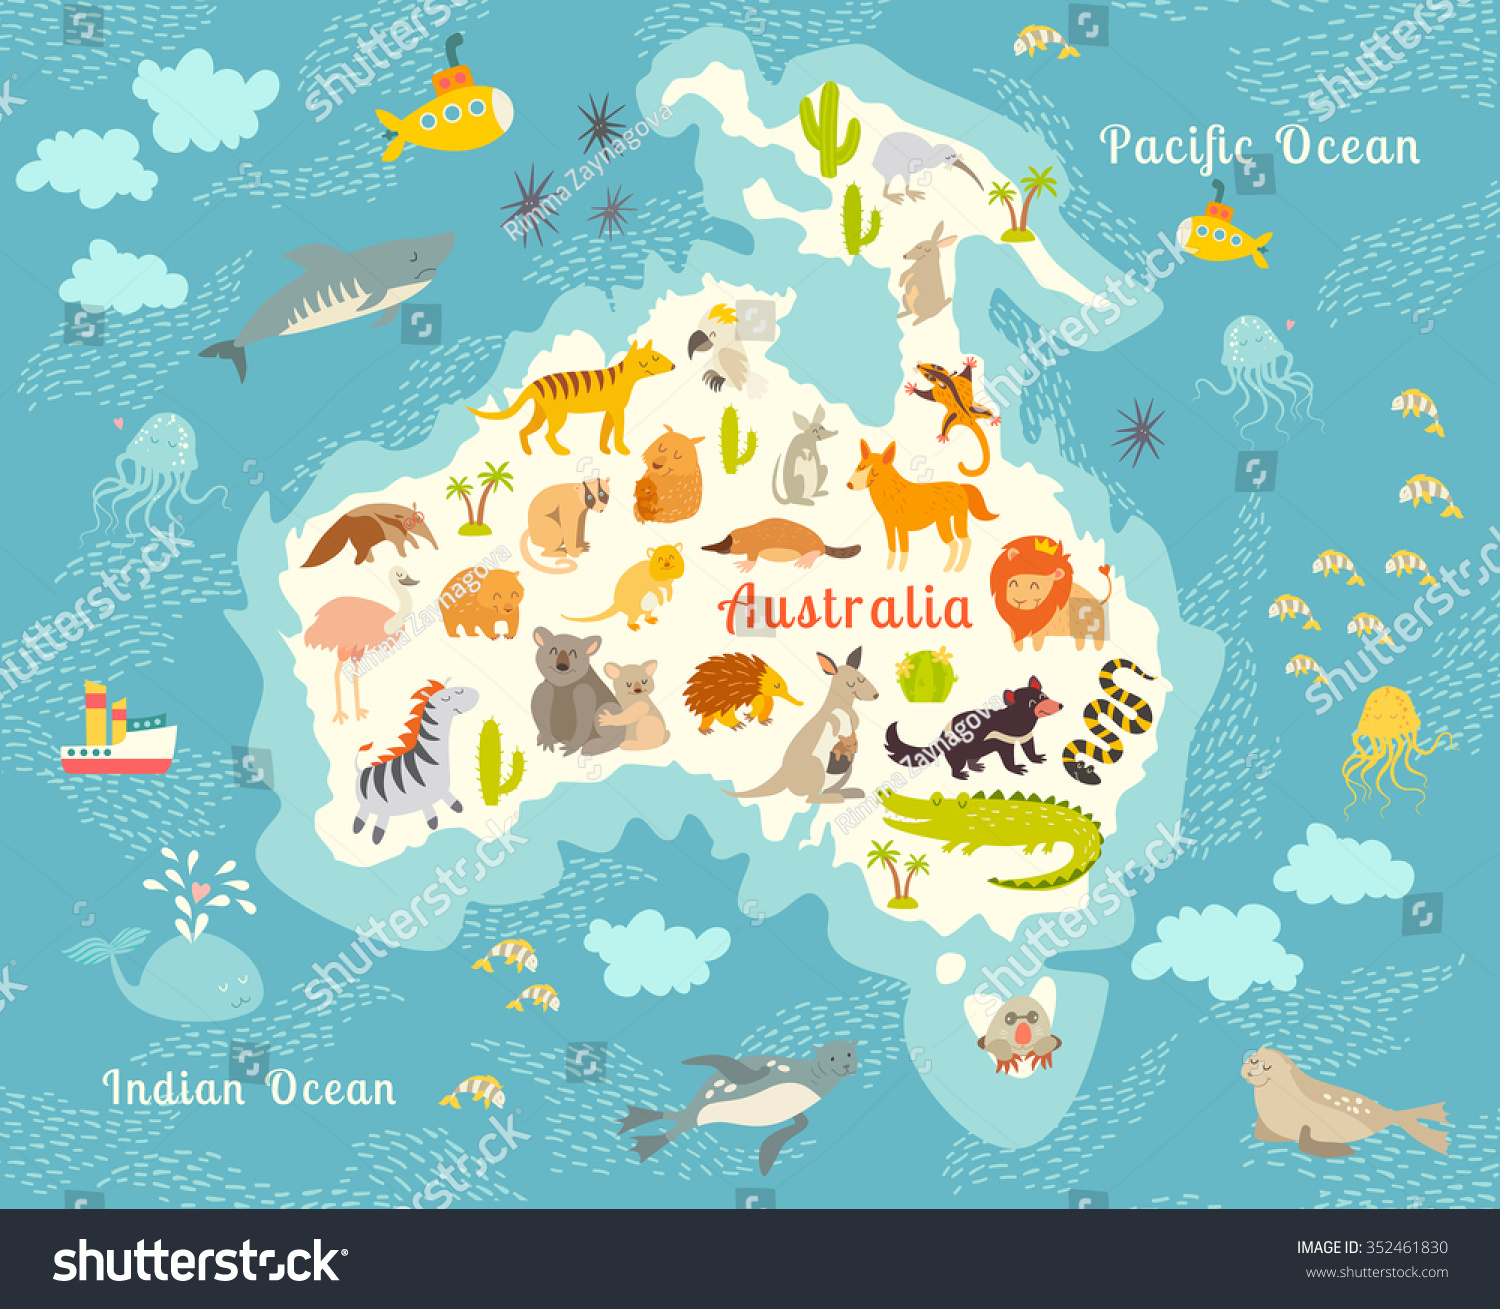 Animals world map australia australian animals stock vector animals world map australia australian animals poster australia map australia mammals cartoon gumiabroncs Image collections